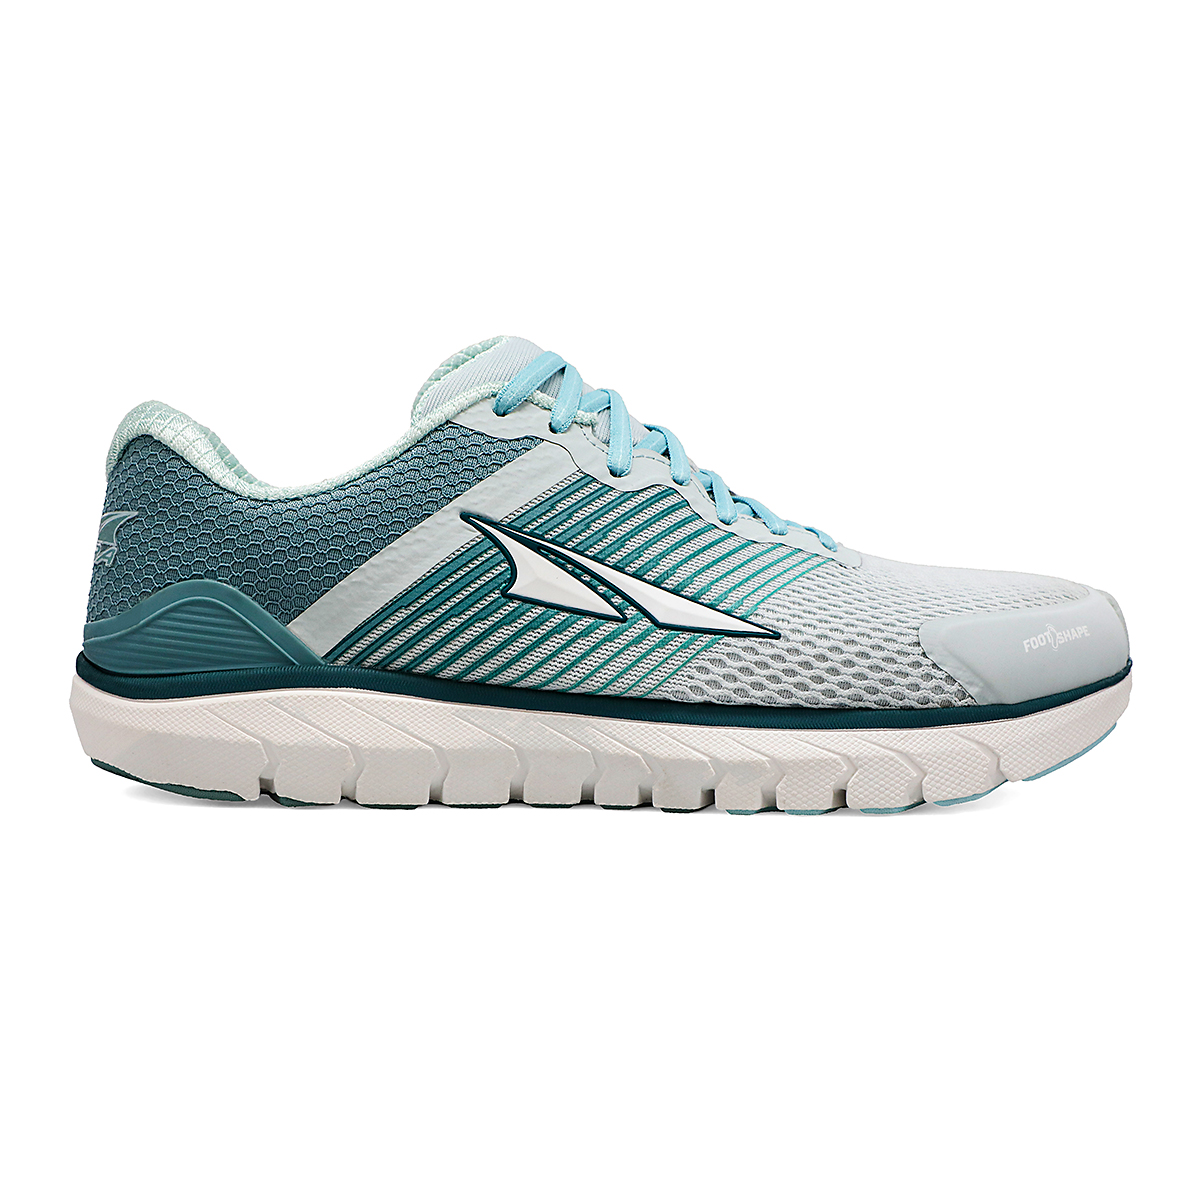 Women's Altra Provision 4 Running Shoe - Color: Ice Flow Blue - Size: 5.5 - Width: Regular, Ice Flow Blue, large, image 1